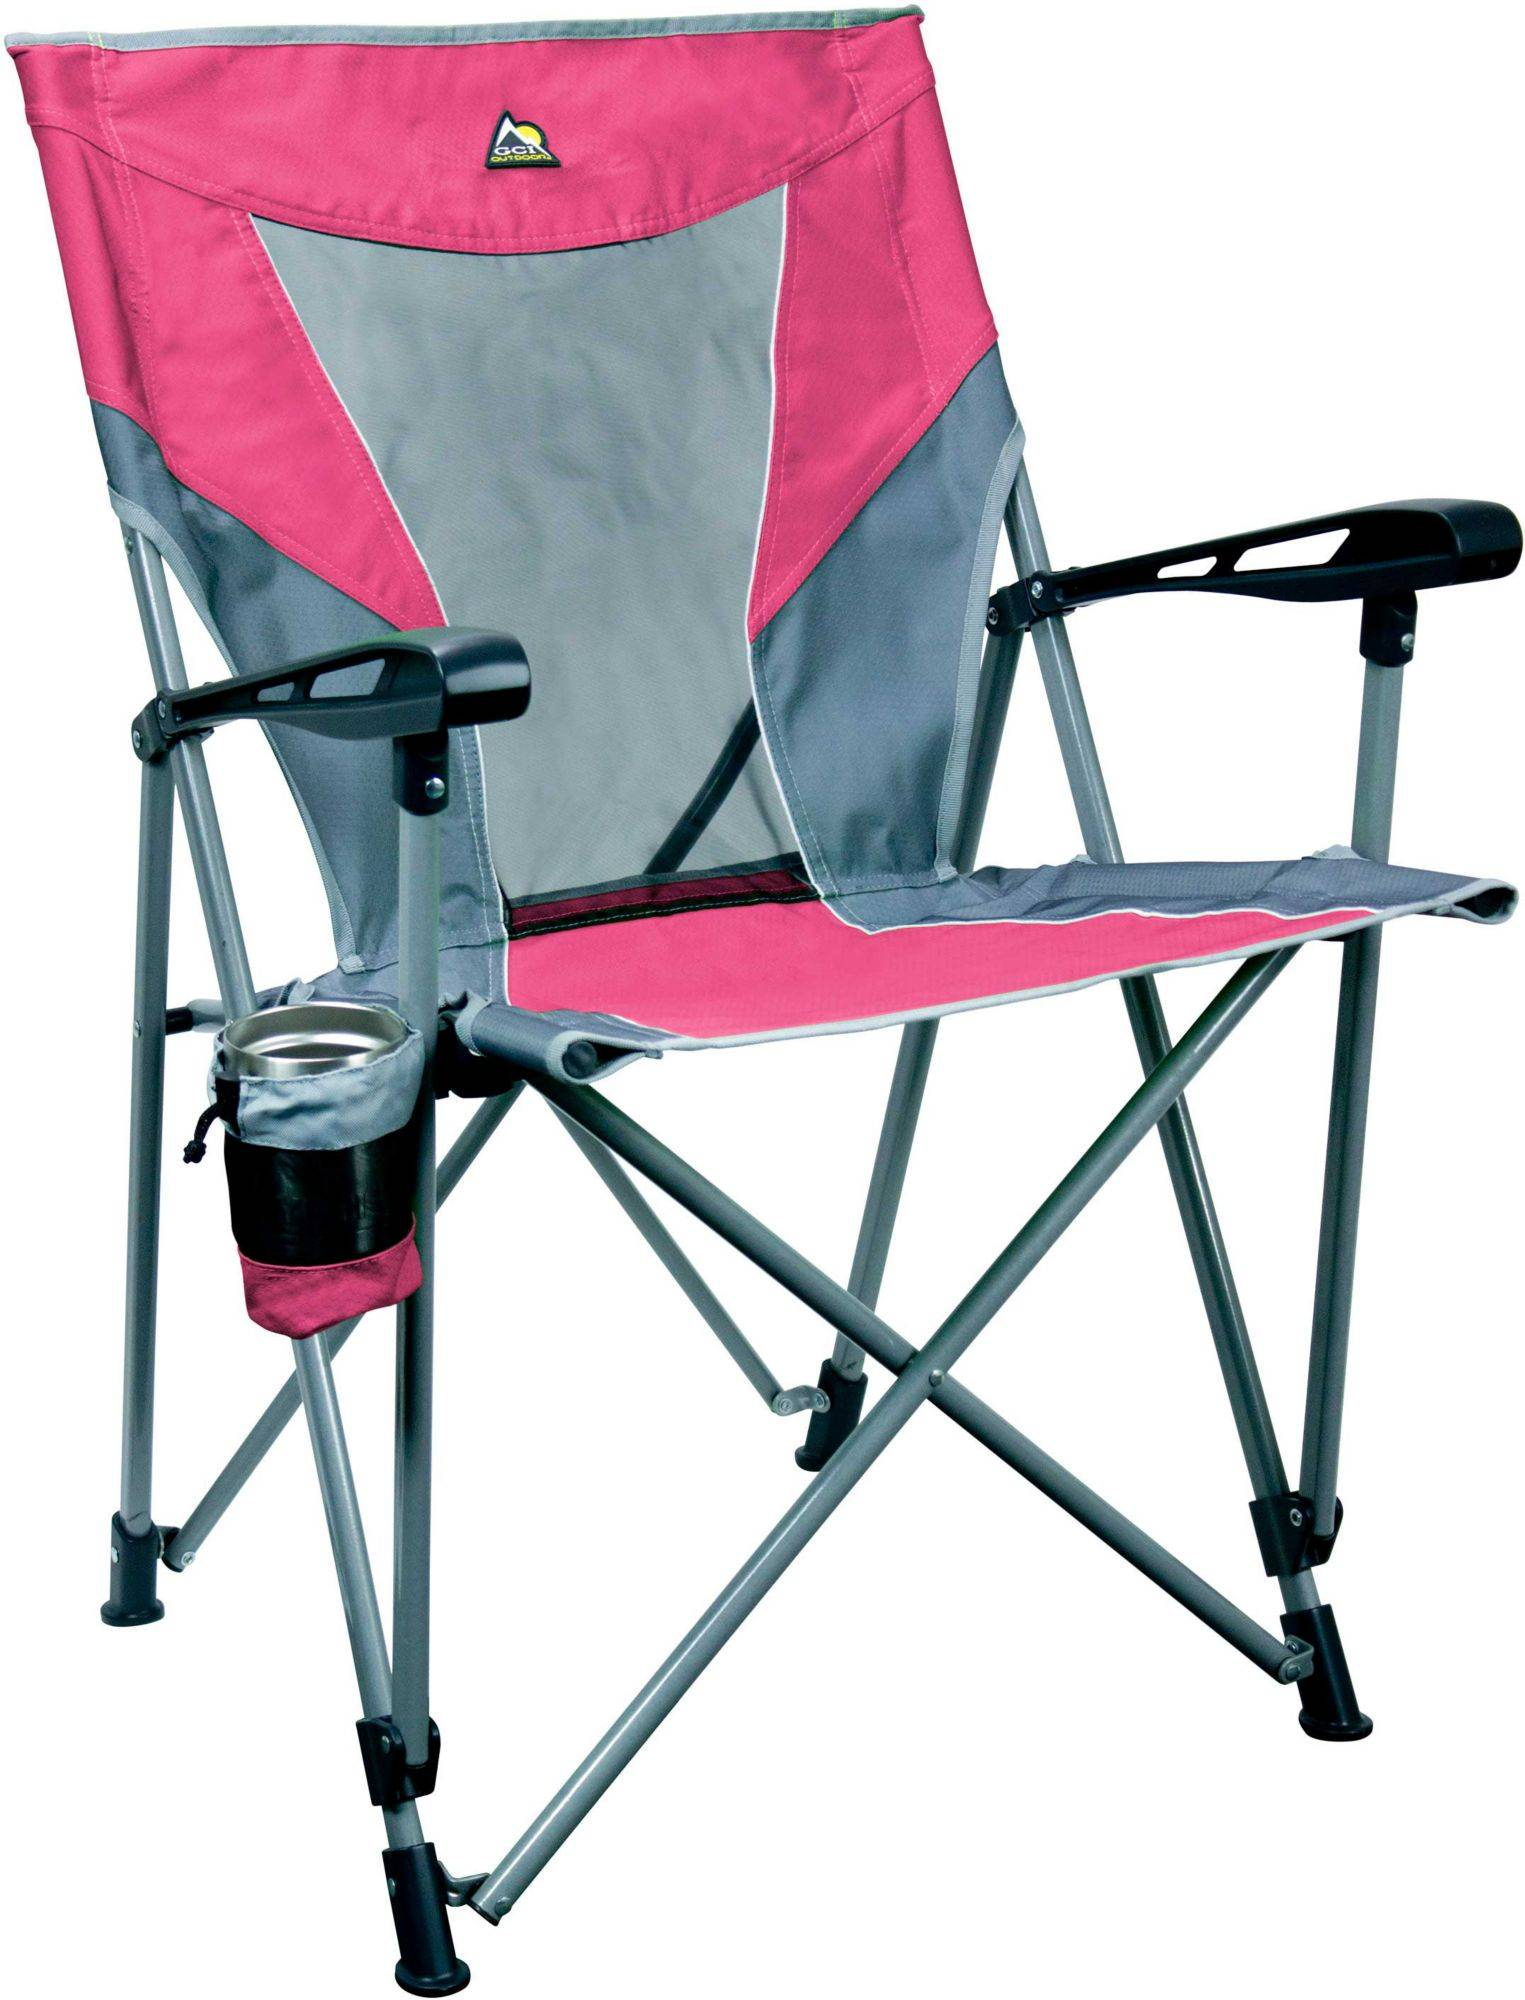 GCI Outdoor Sports Chair, Pink